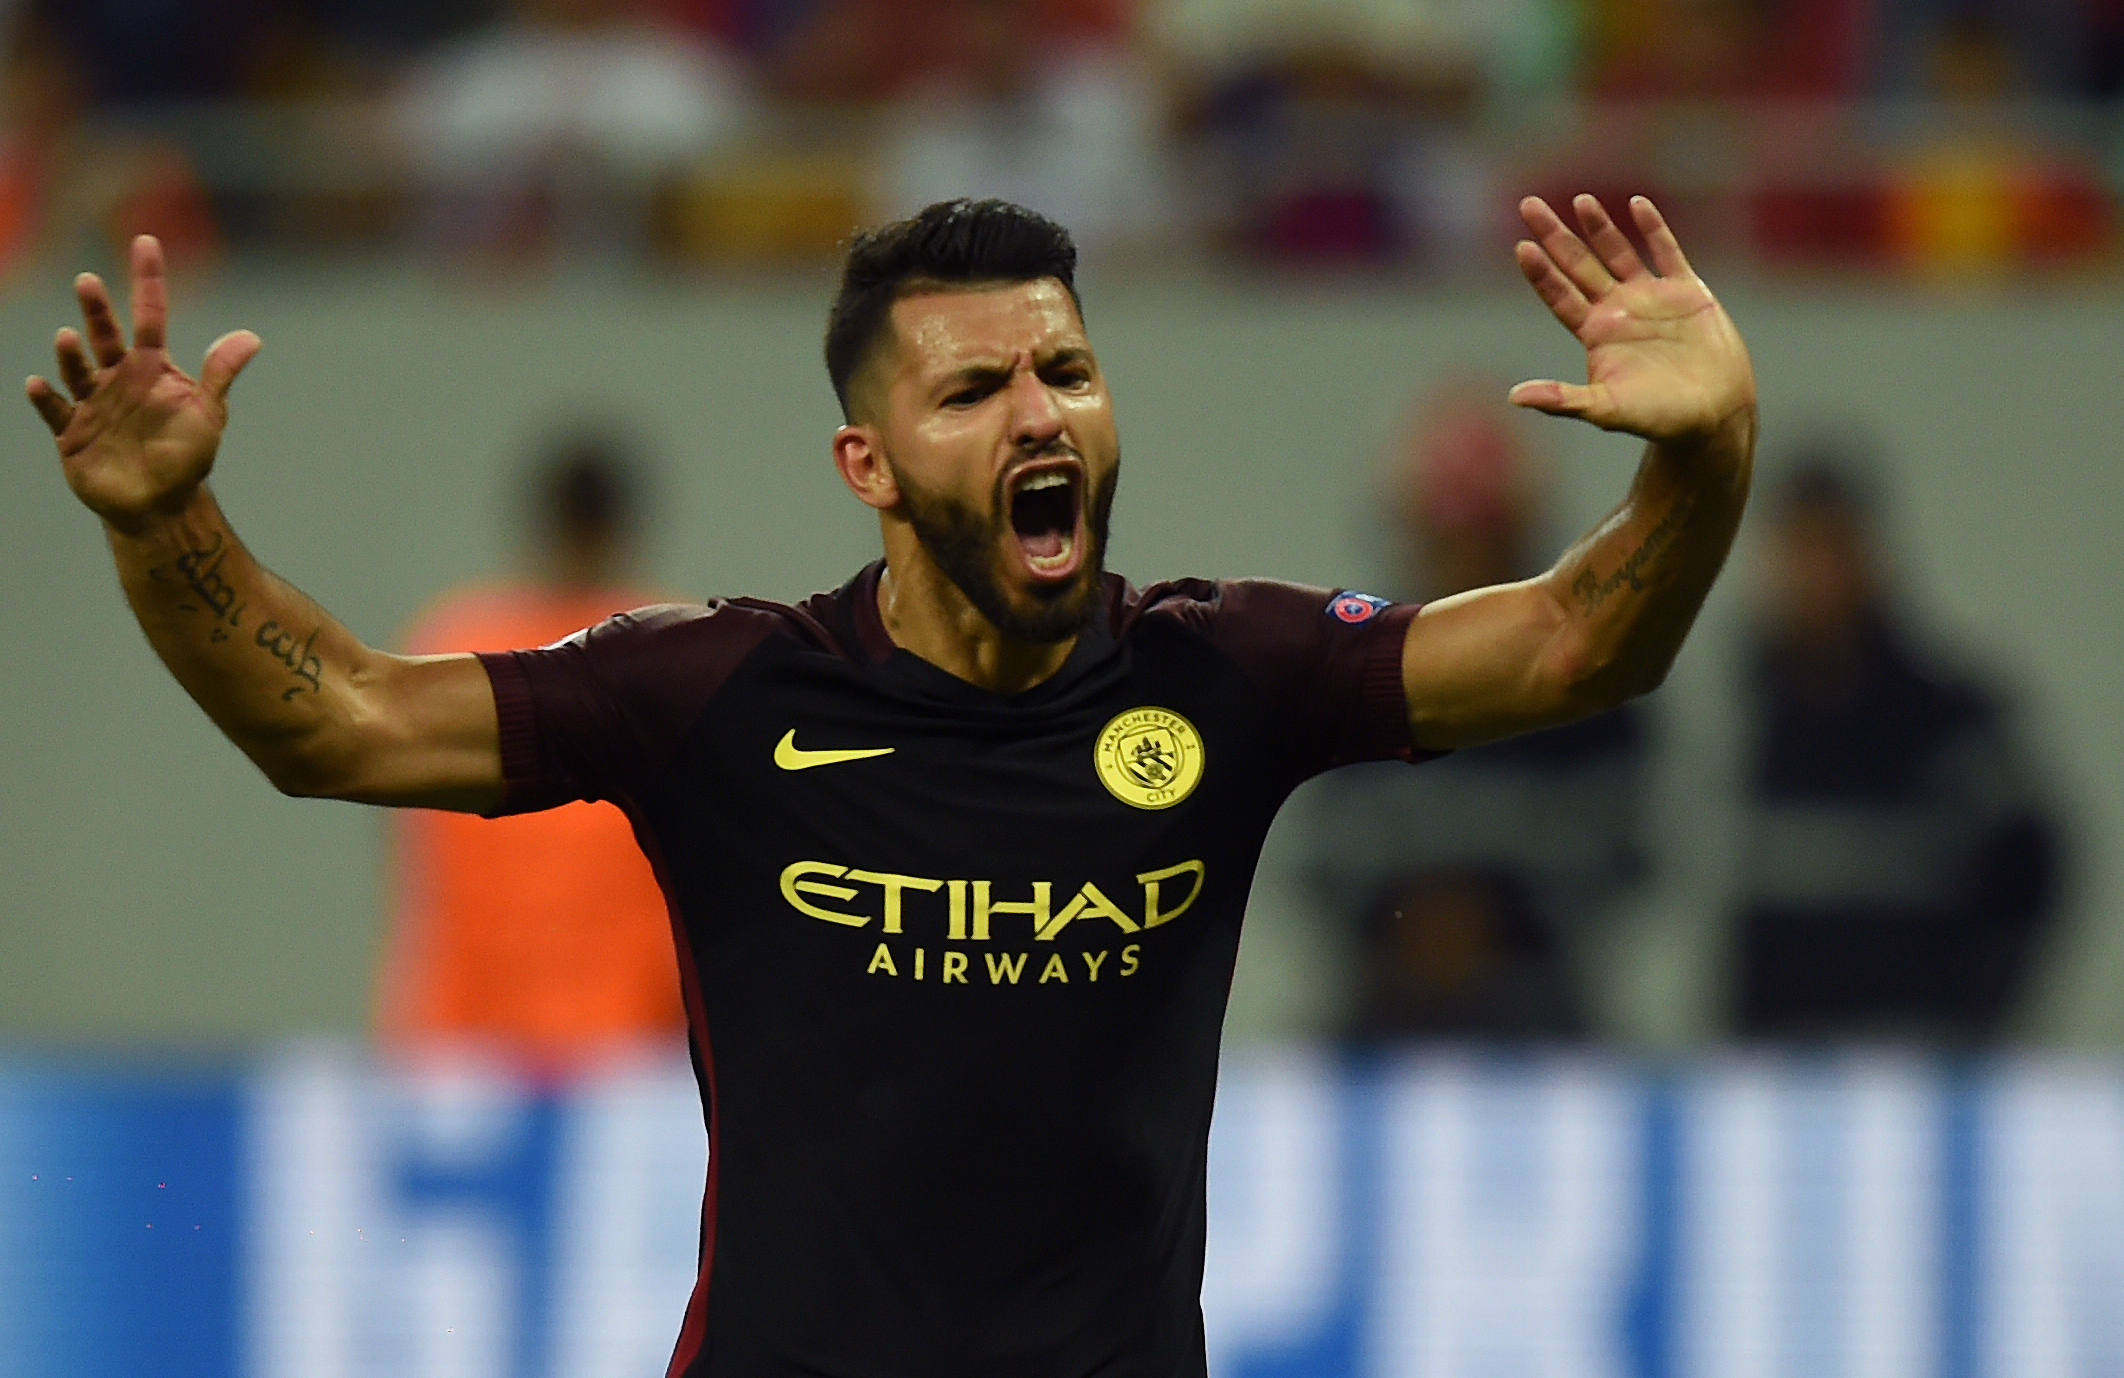 Stoke v Man City Premier League: Date, kick-off time, TV channel and odds